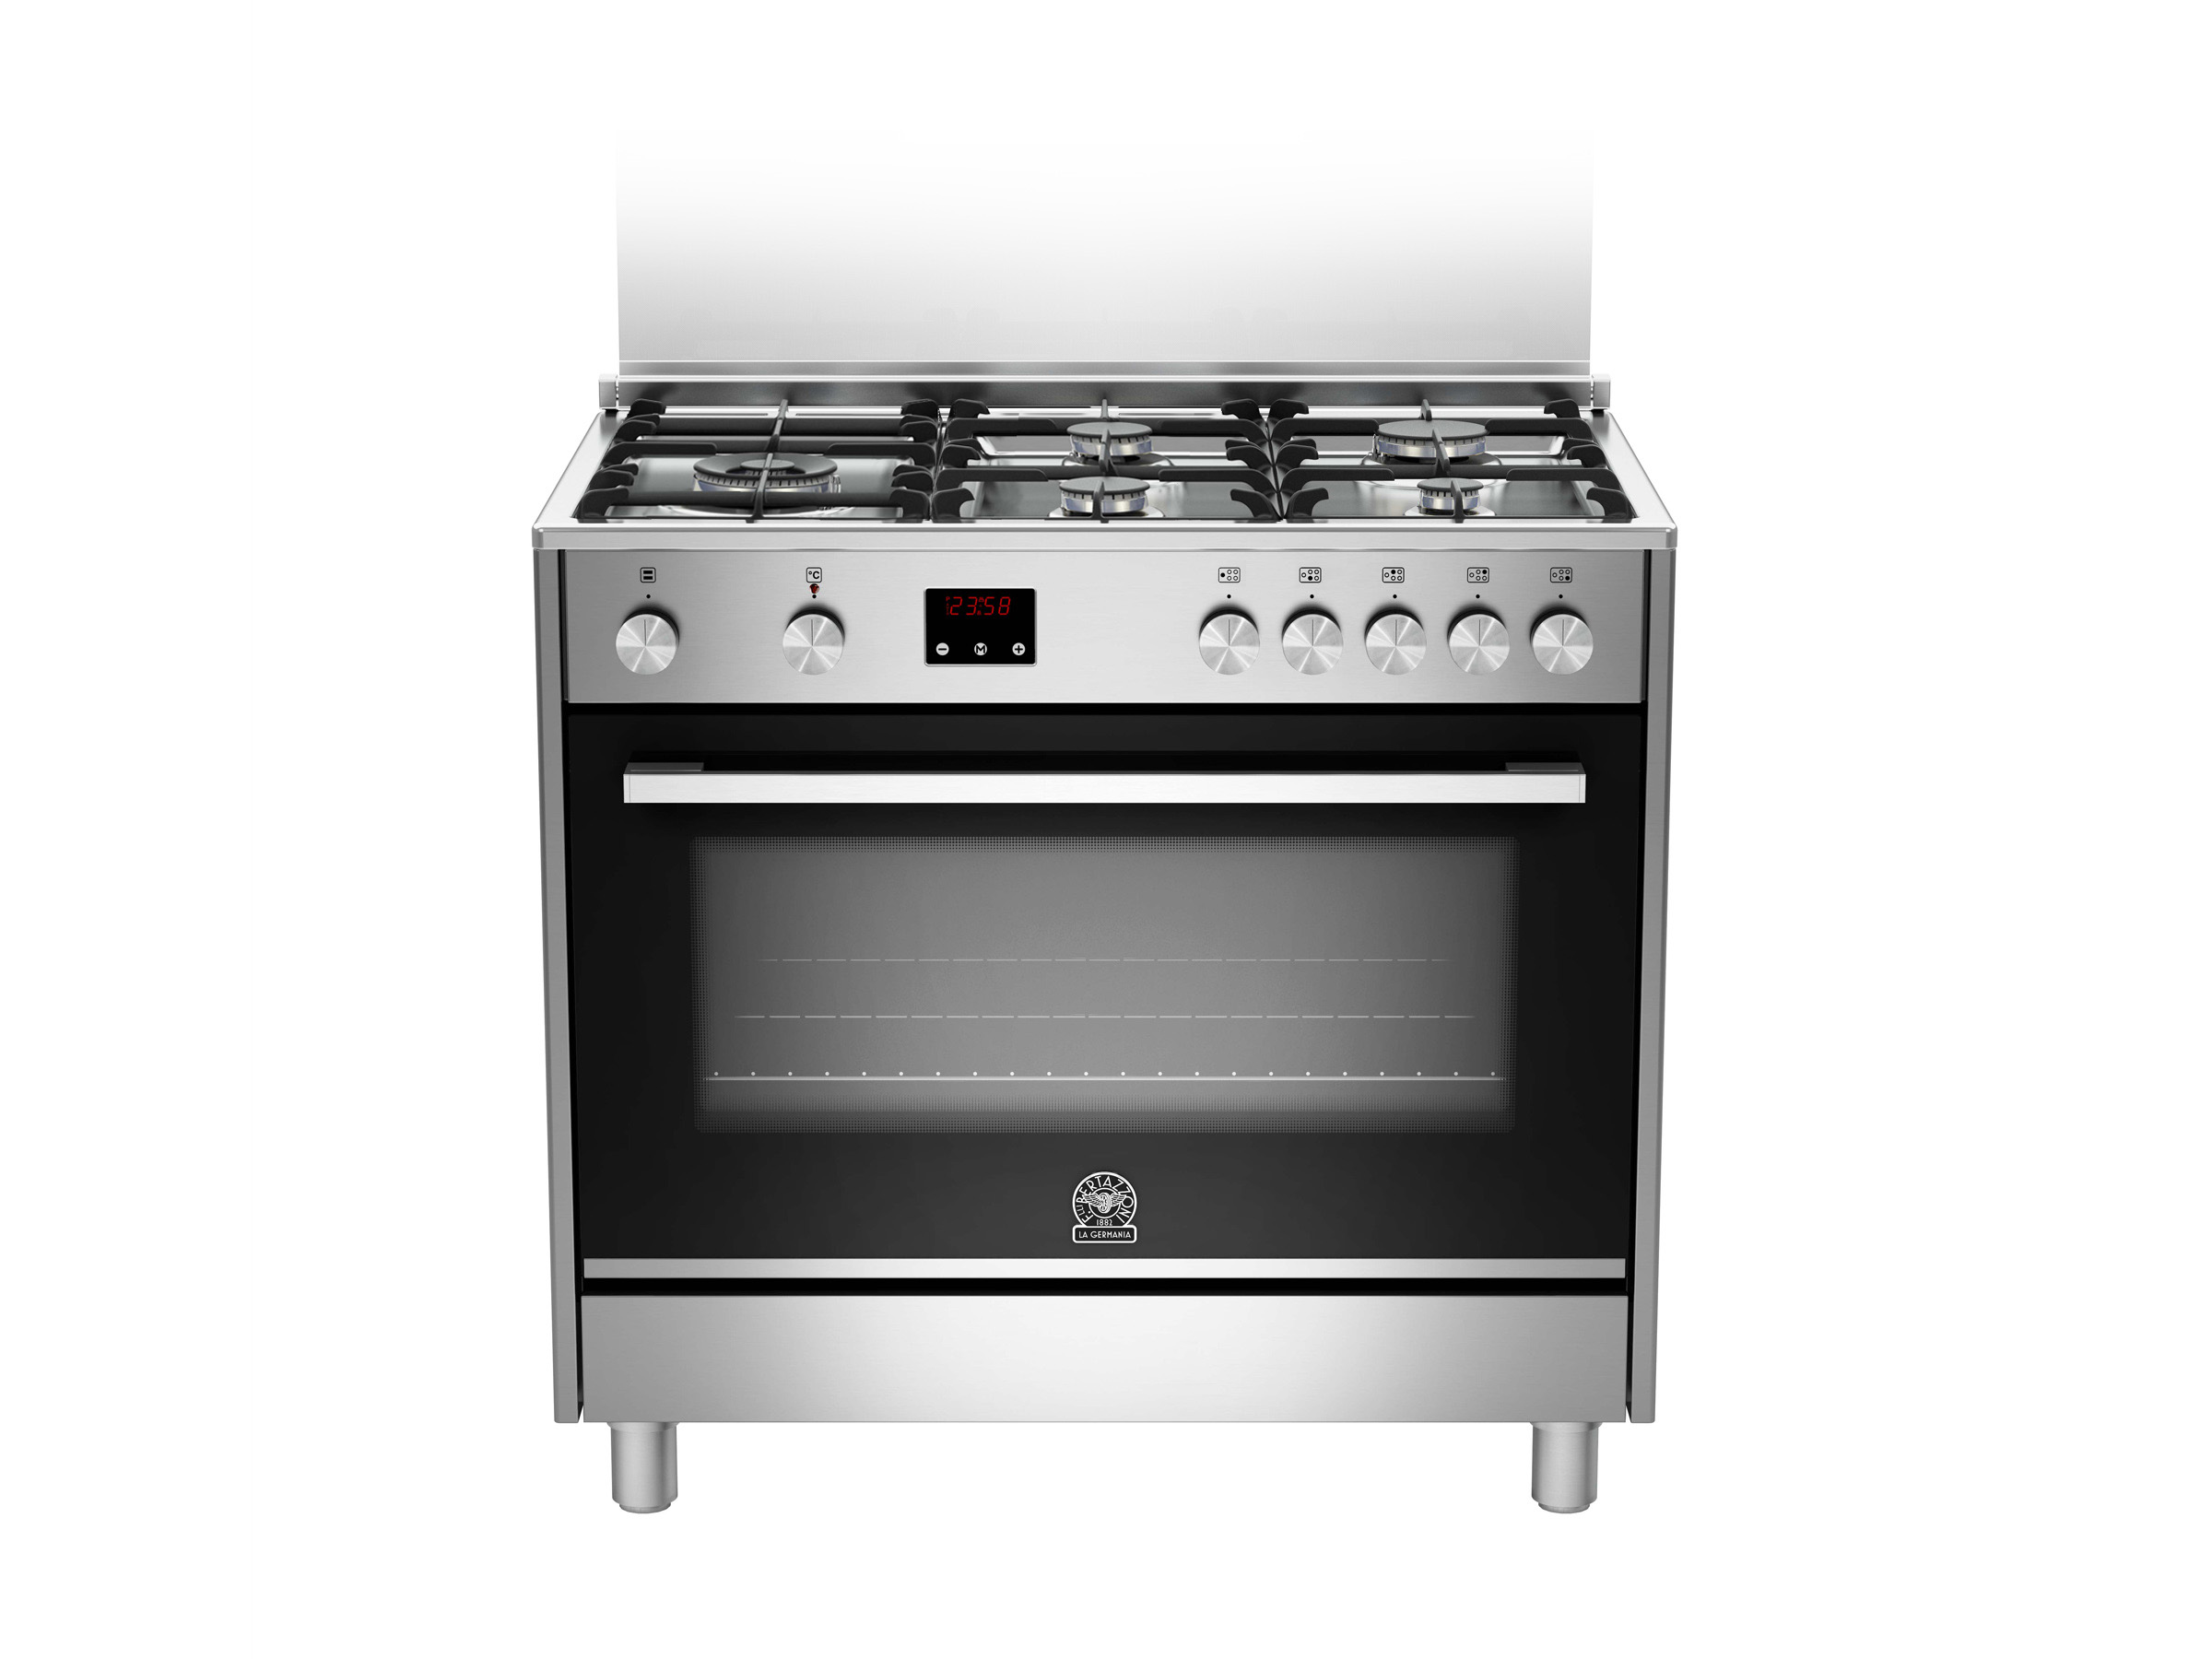 90 5-Burners Electric Oven Electric Grill CX | Bertazzoni La Germania - Stainless